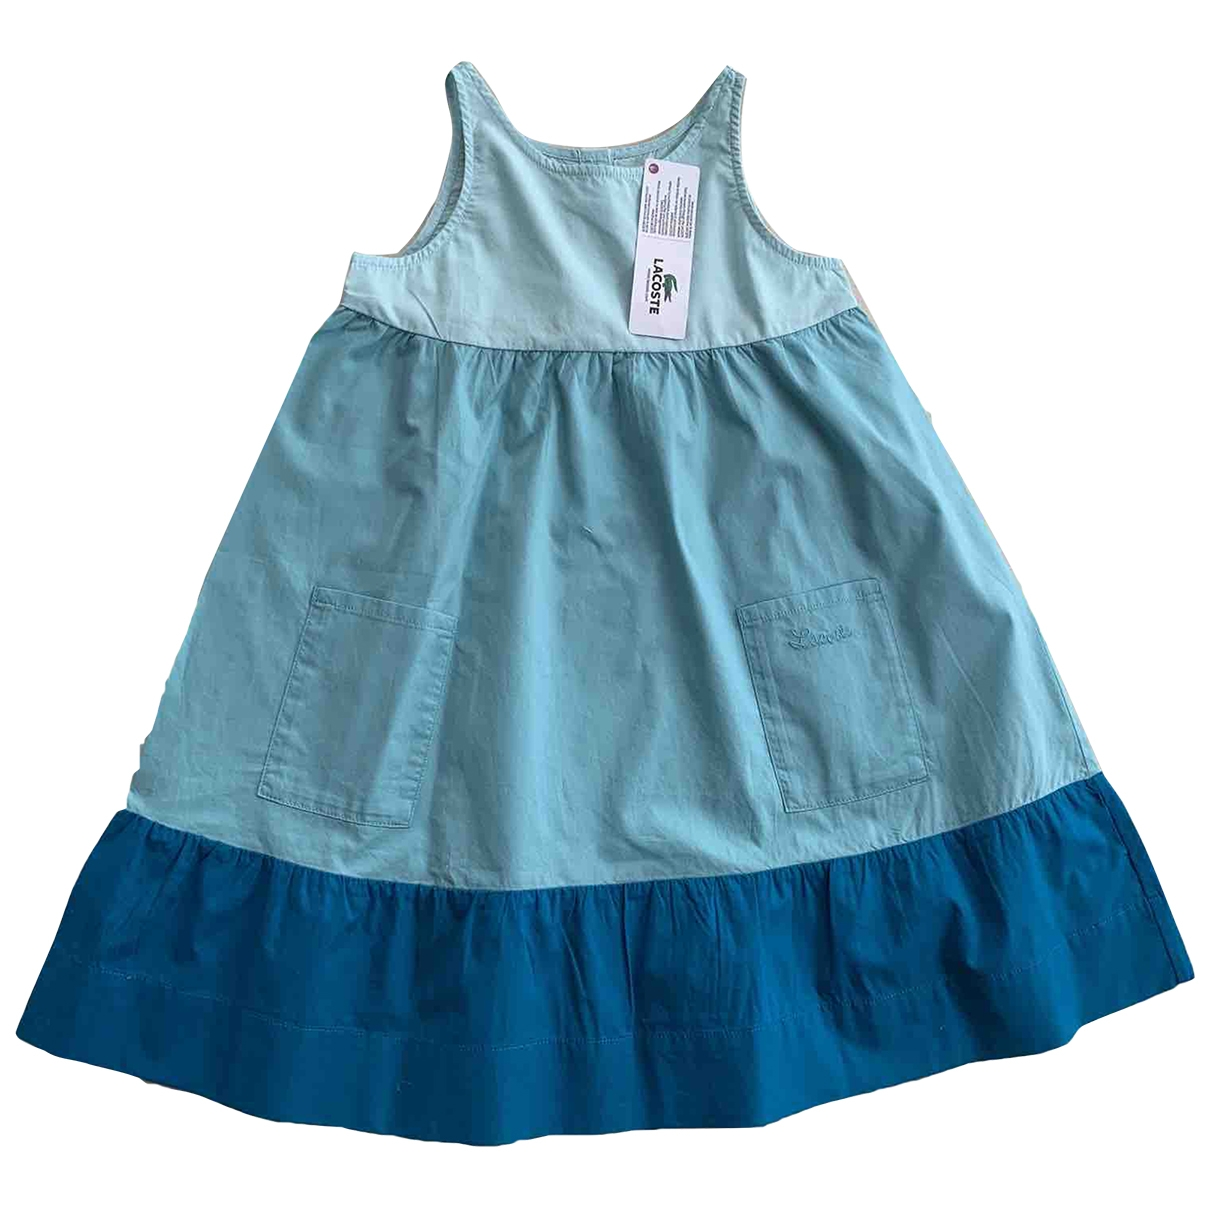 Lacoste \N Blue Cotton dress for Kids 6 years - up to 114cm FR